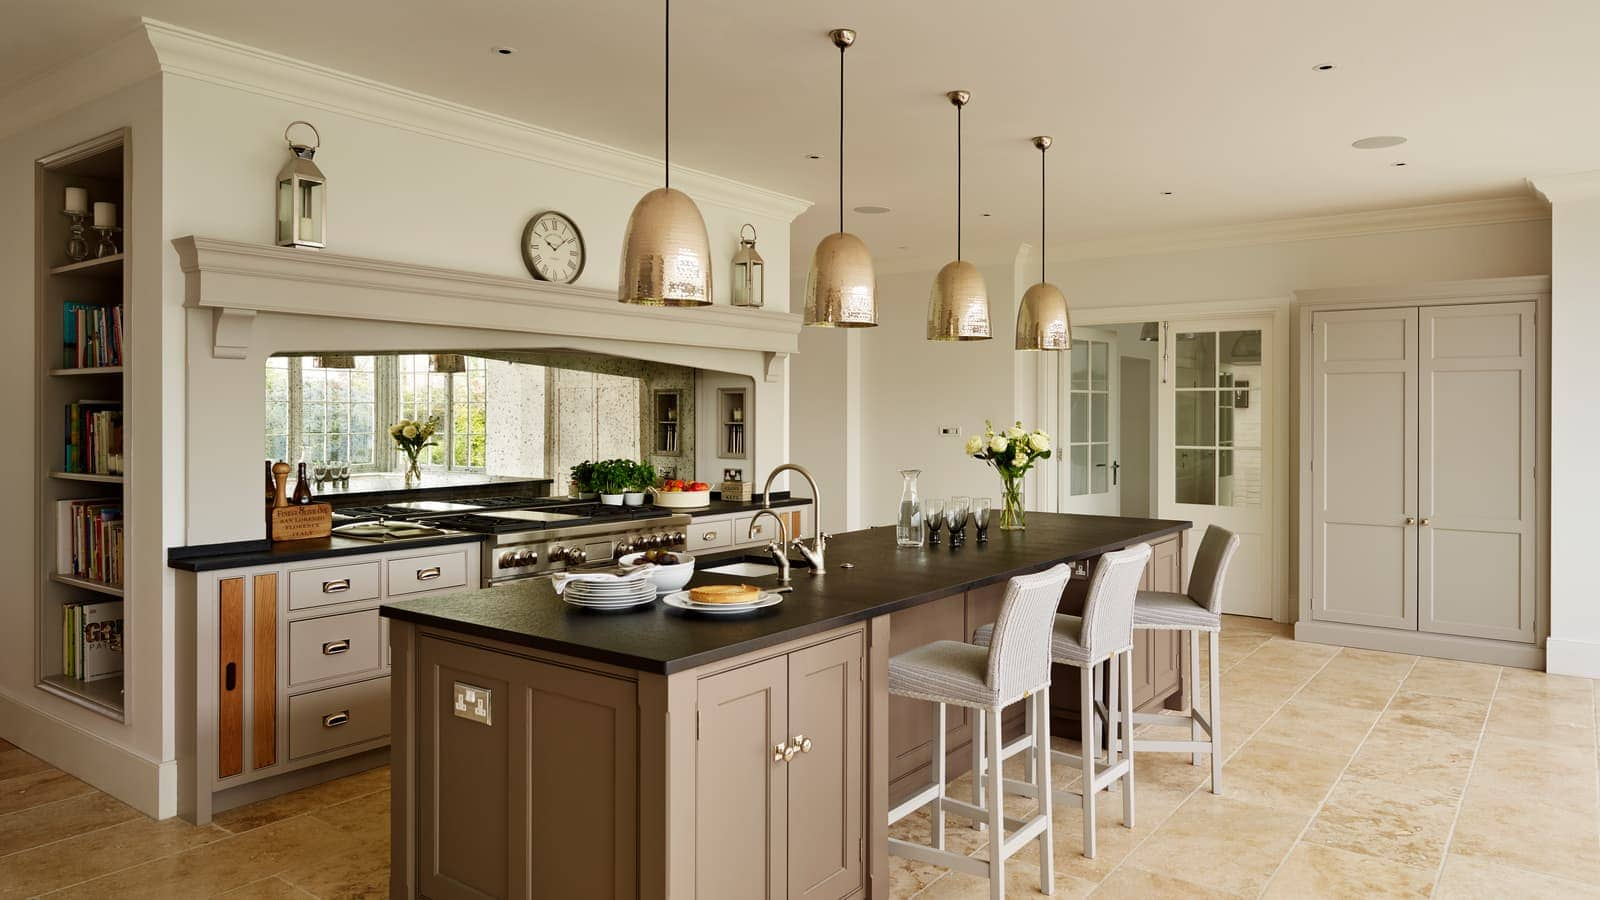 Contemporary Kitchen Extension with clever architectural detail